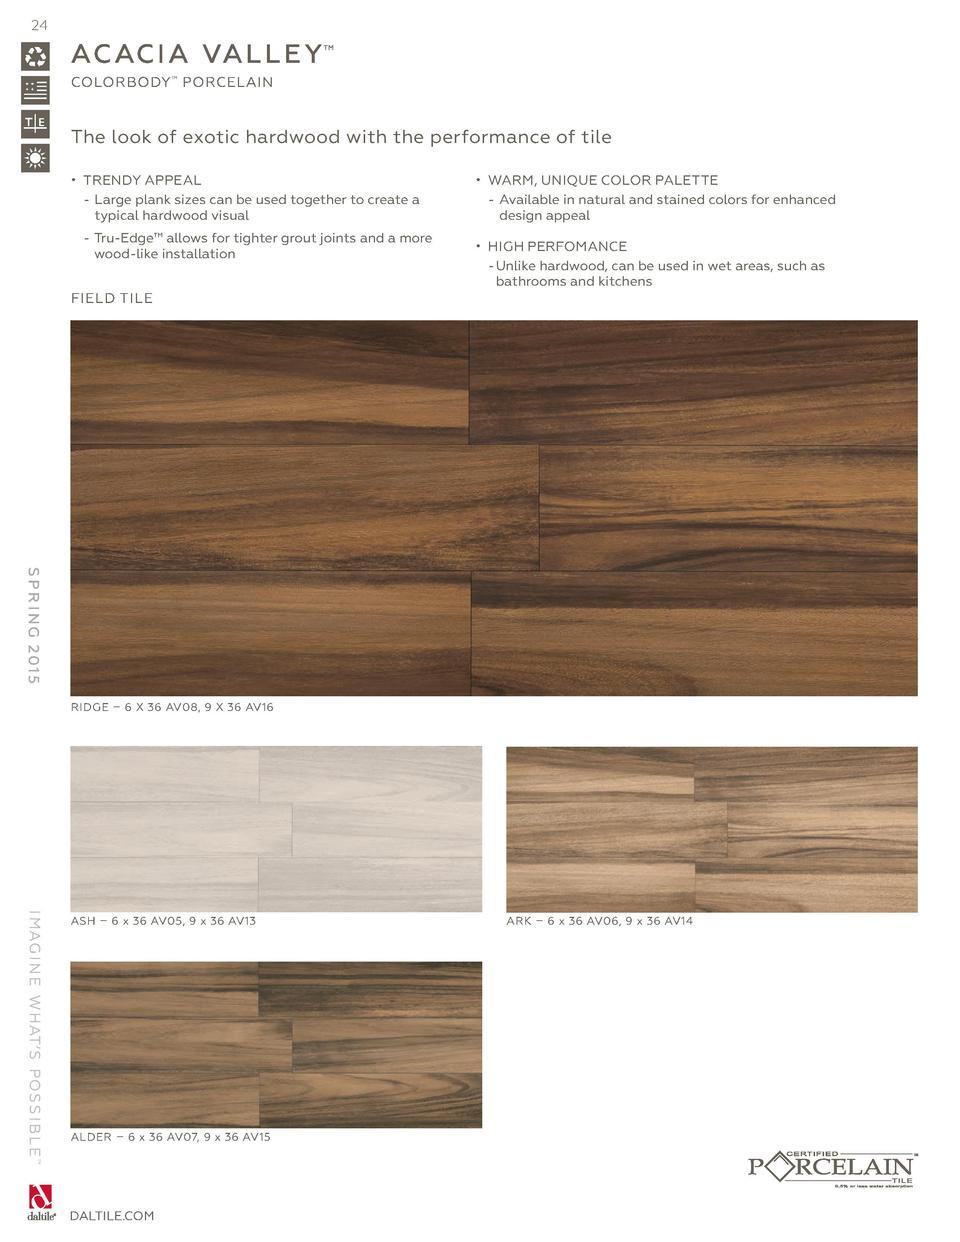 palm acacia hardwood flooring of daltile spring 2015 catalog simplebooklet com with 24 ac ac i a val l e y colorbody porcelain the look of exotic hardwood with the performance